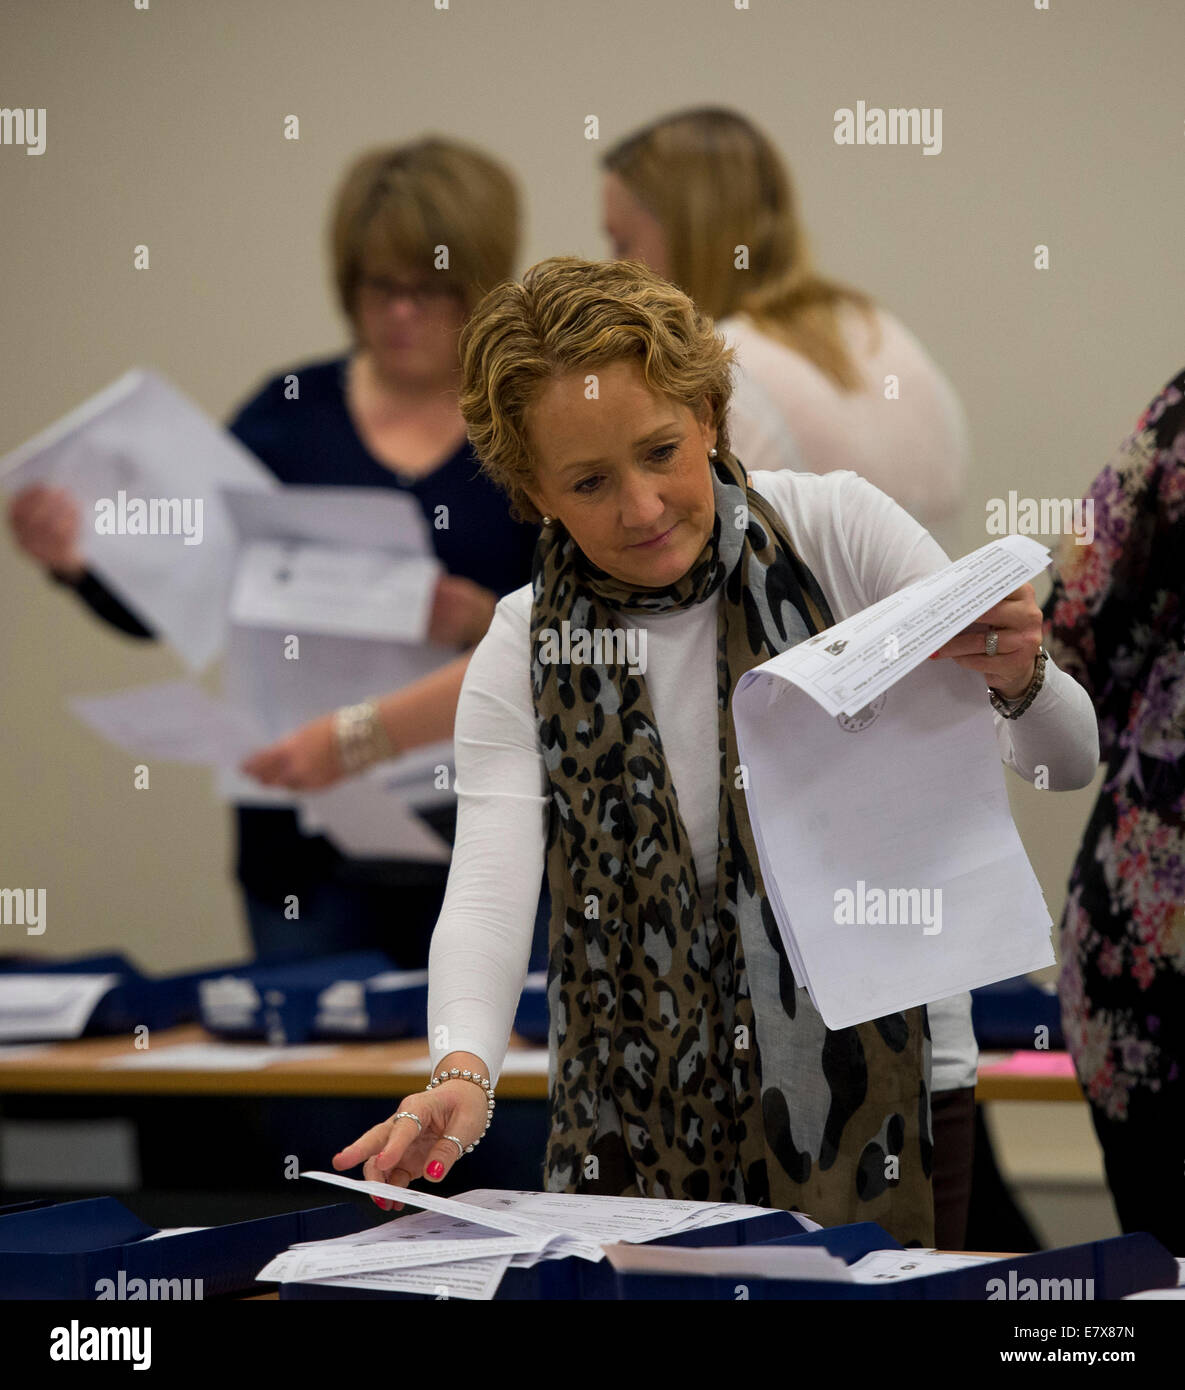 Ballot paper votes are counted by vote counters during the European election in Merthyr Tydfil. - Stock Image